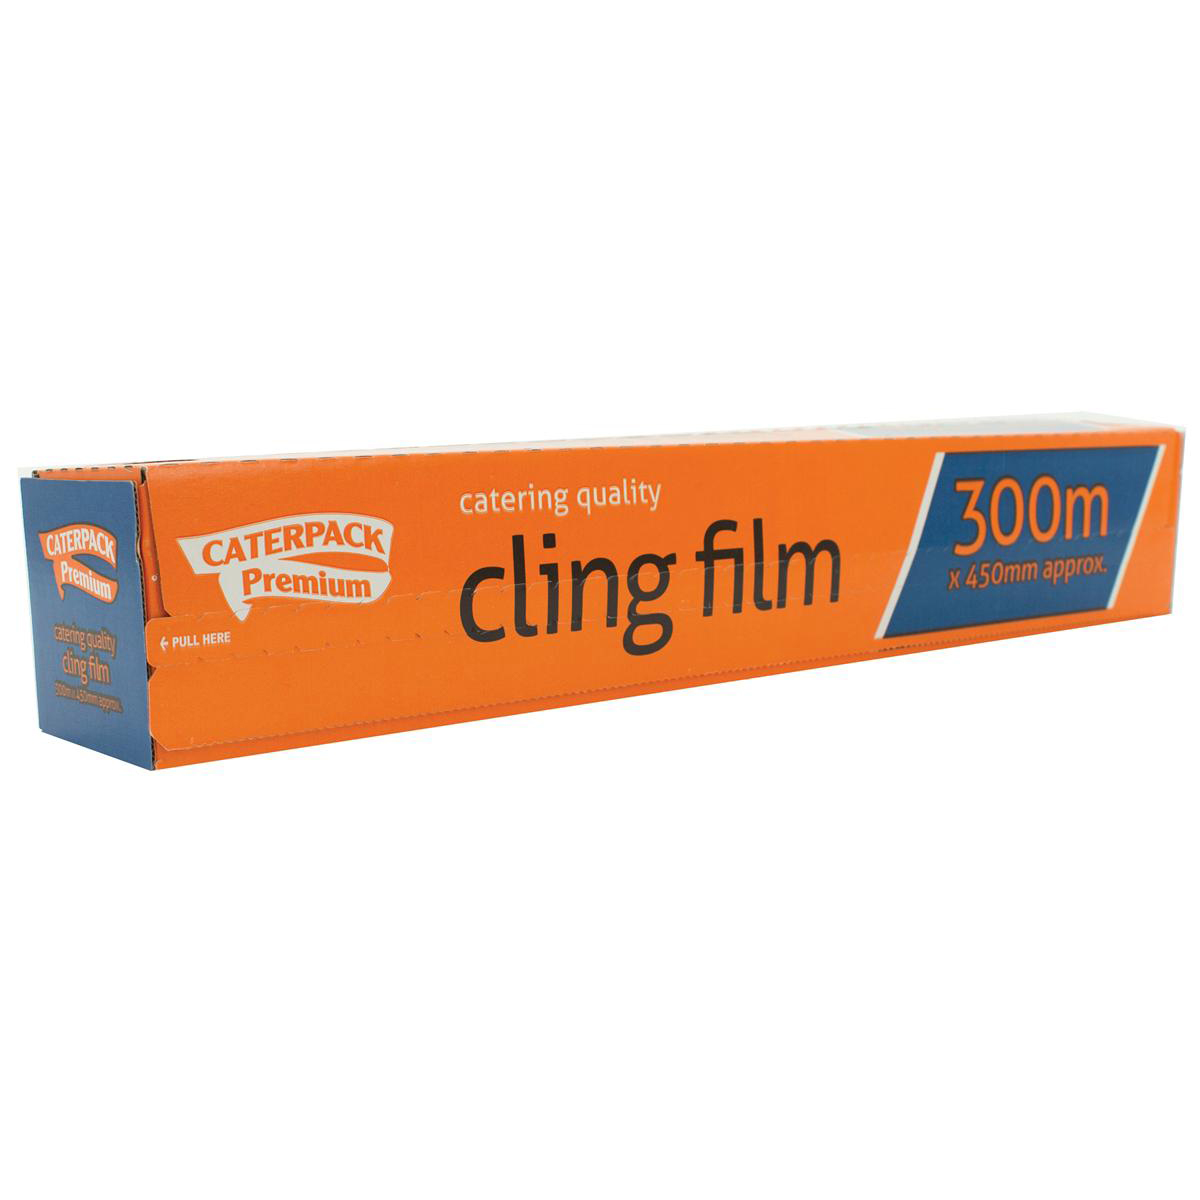 Cling Film Caterpack Cling Film Antibacterial 450mm x 300m Ref 0163